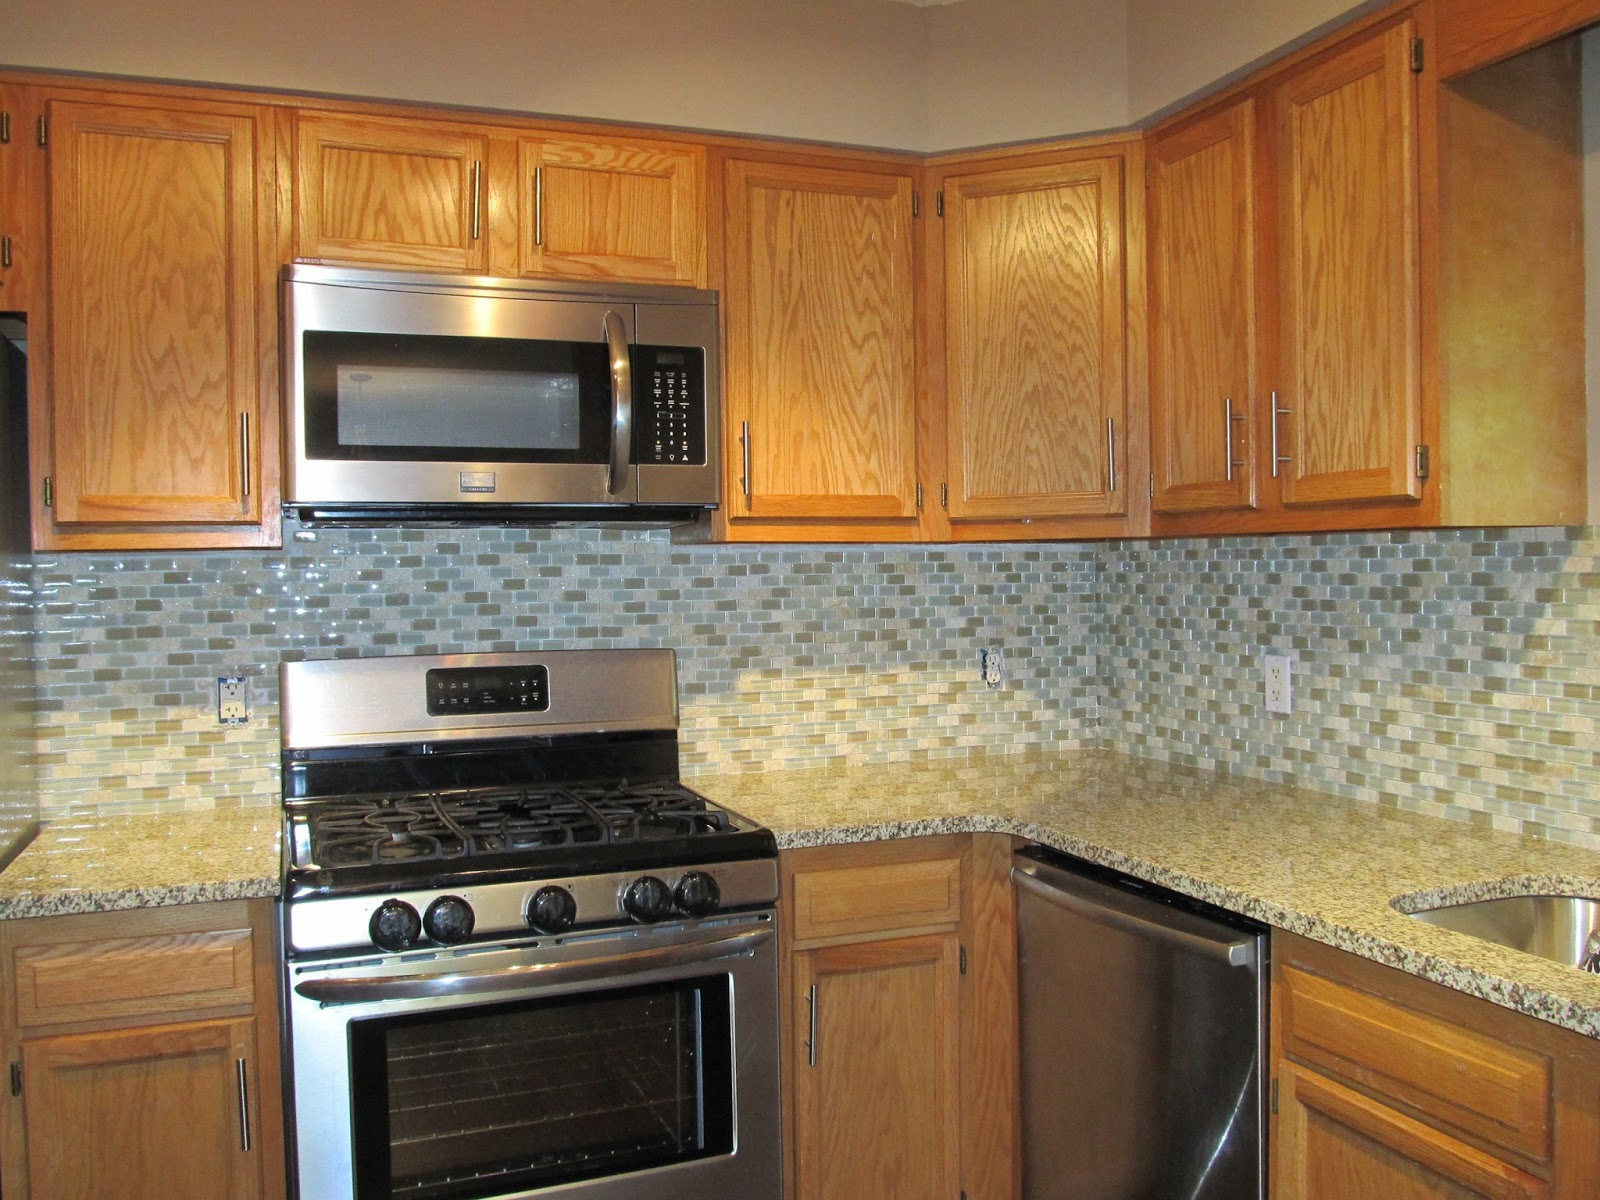 consider before buying hawaii things countertops granite affordable when to buy tips remember choosing